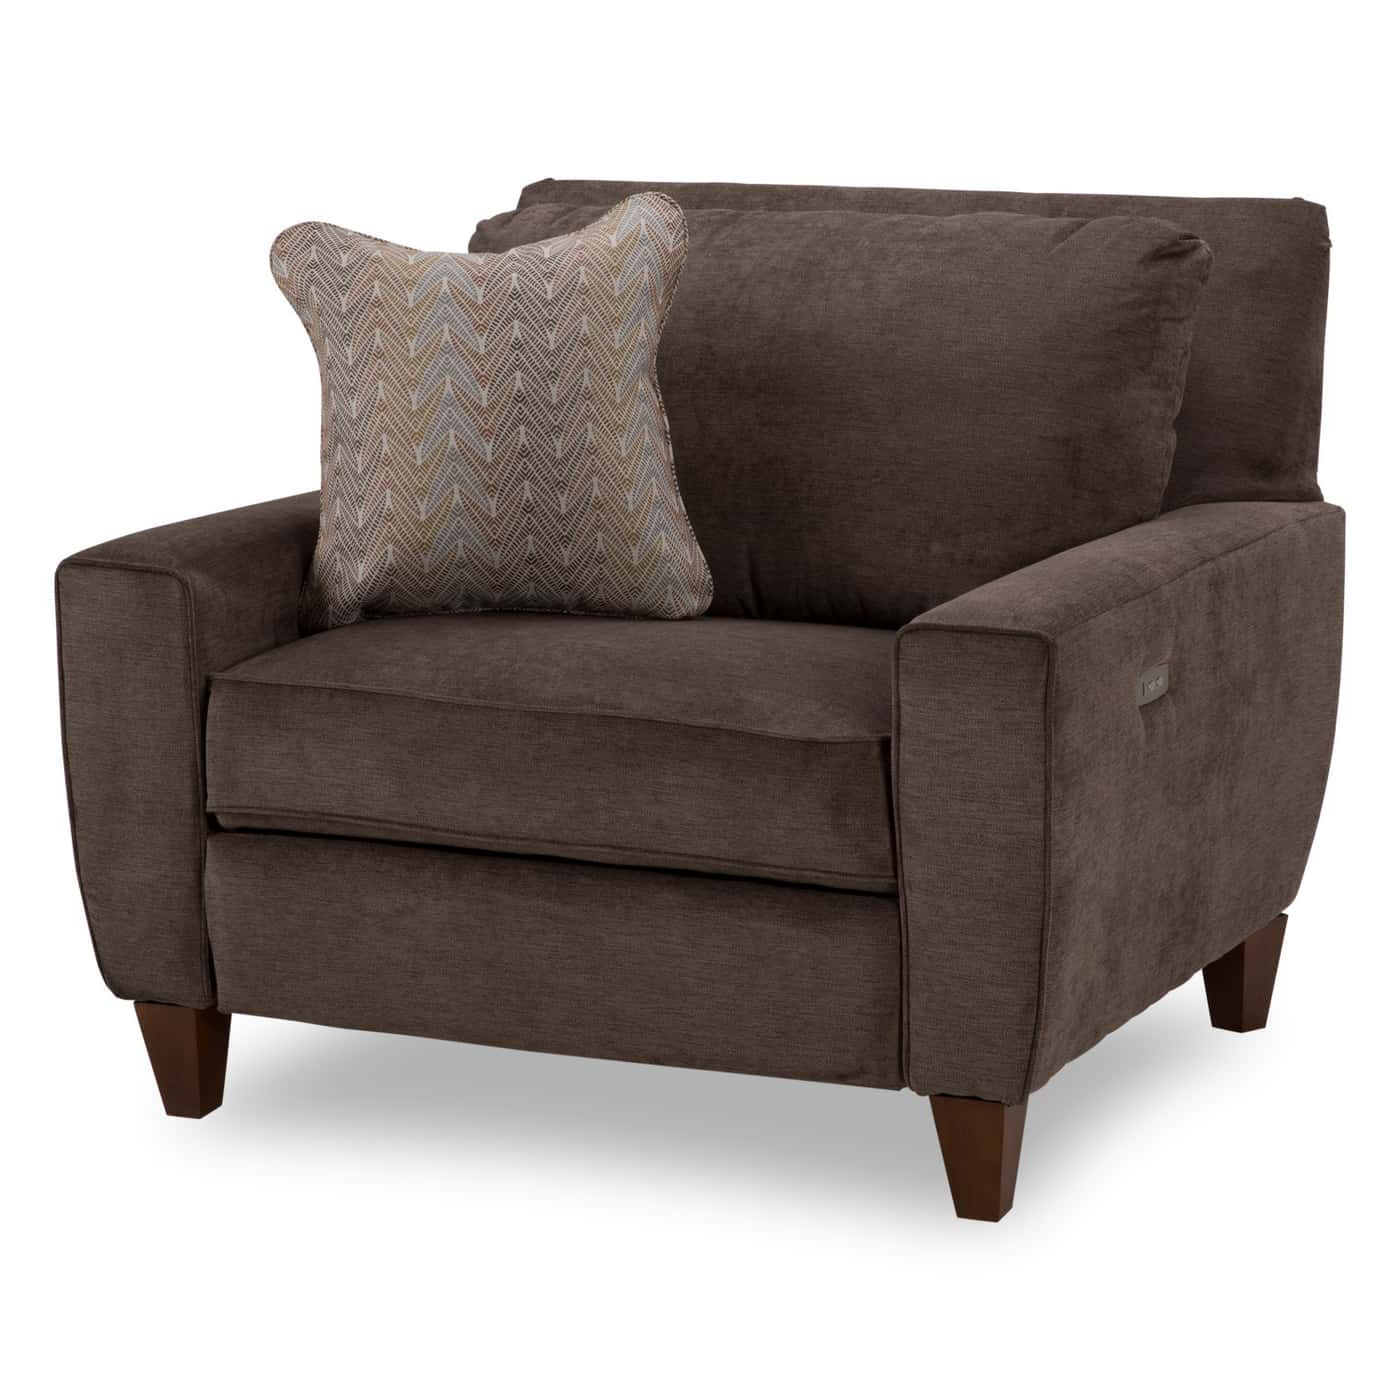 Trendy Bennett Power Reclining Chair And A Half (View 11 of 15)